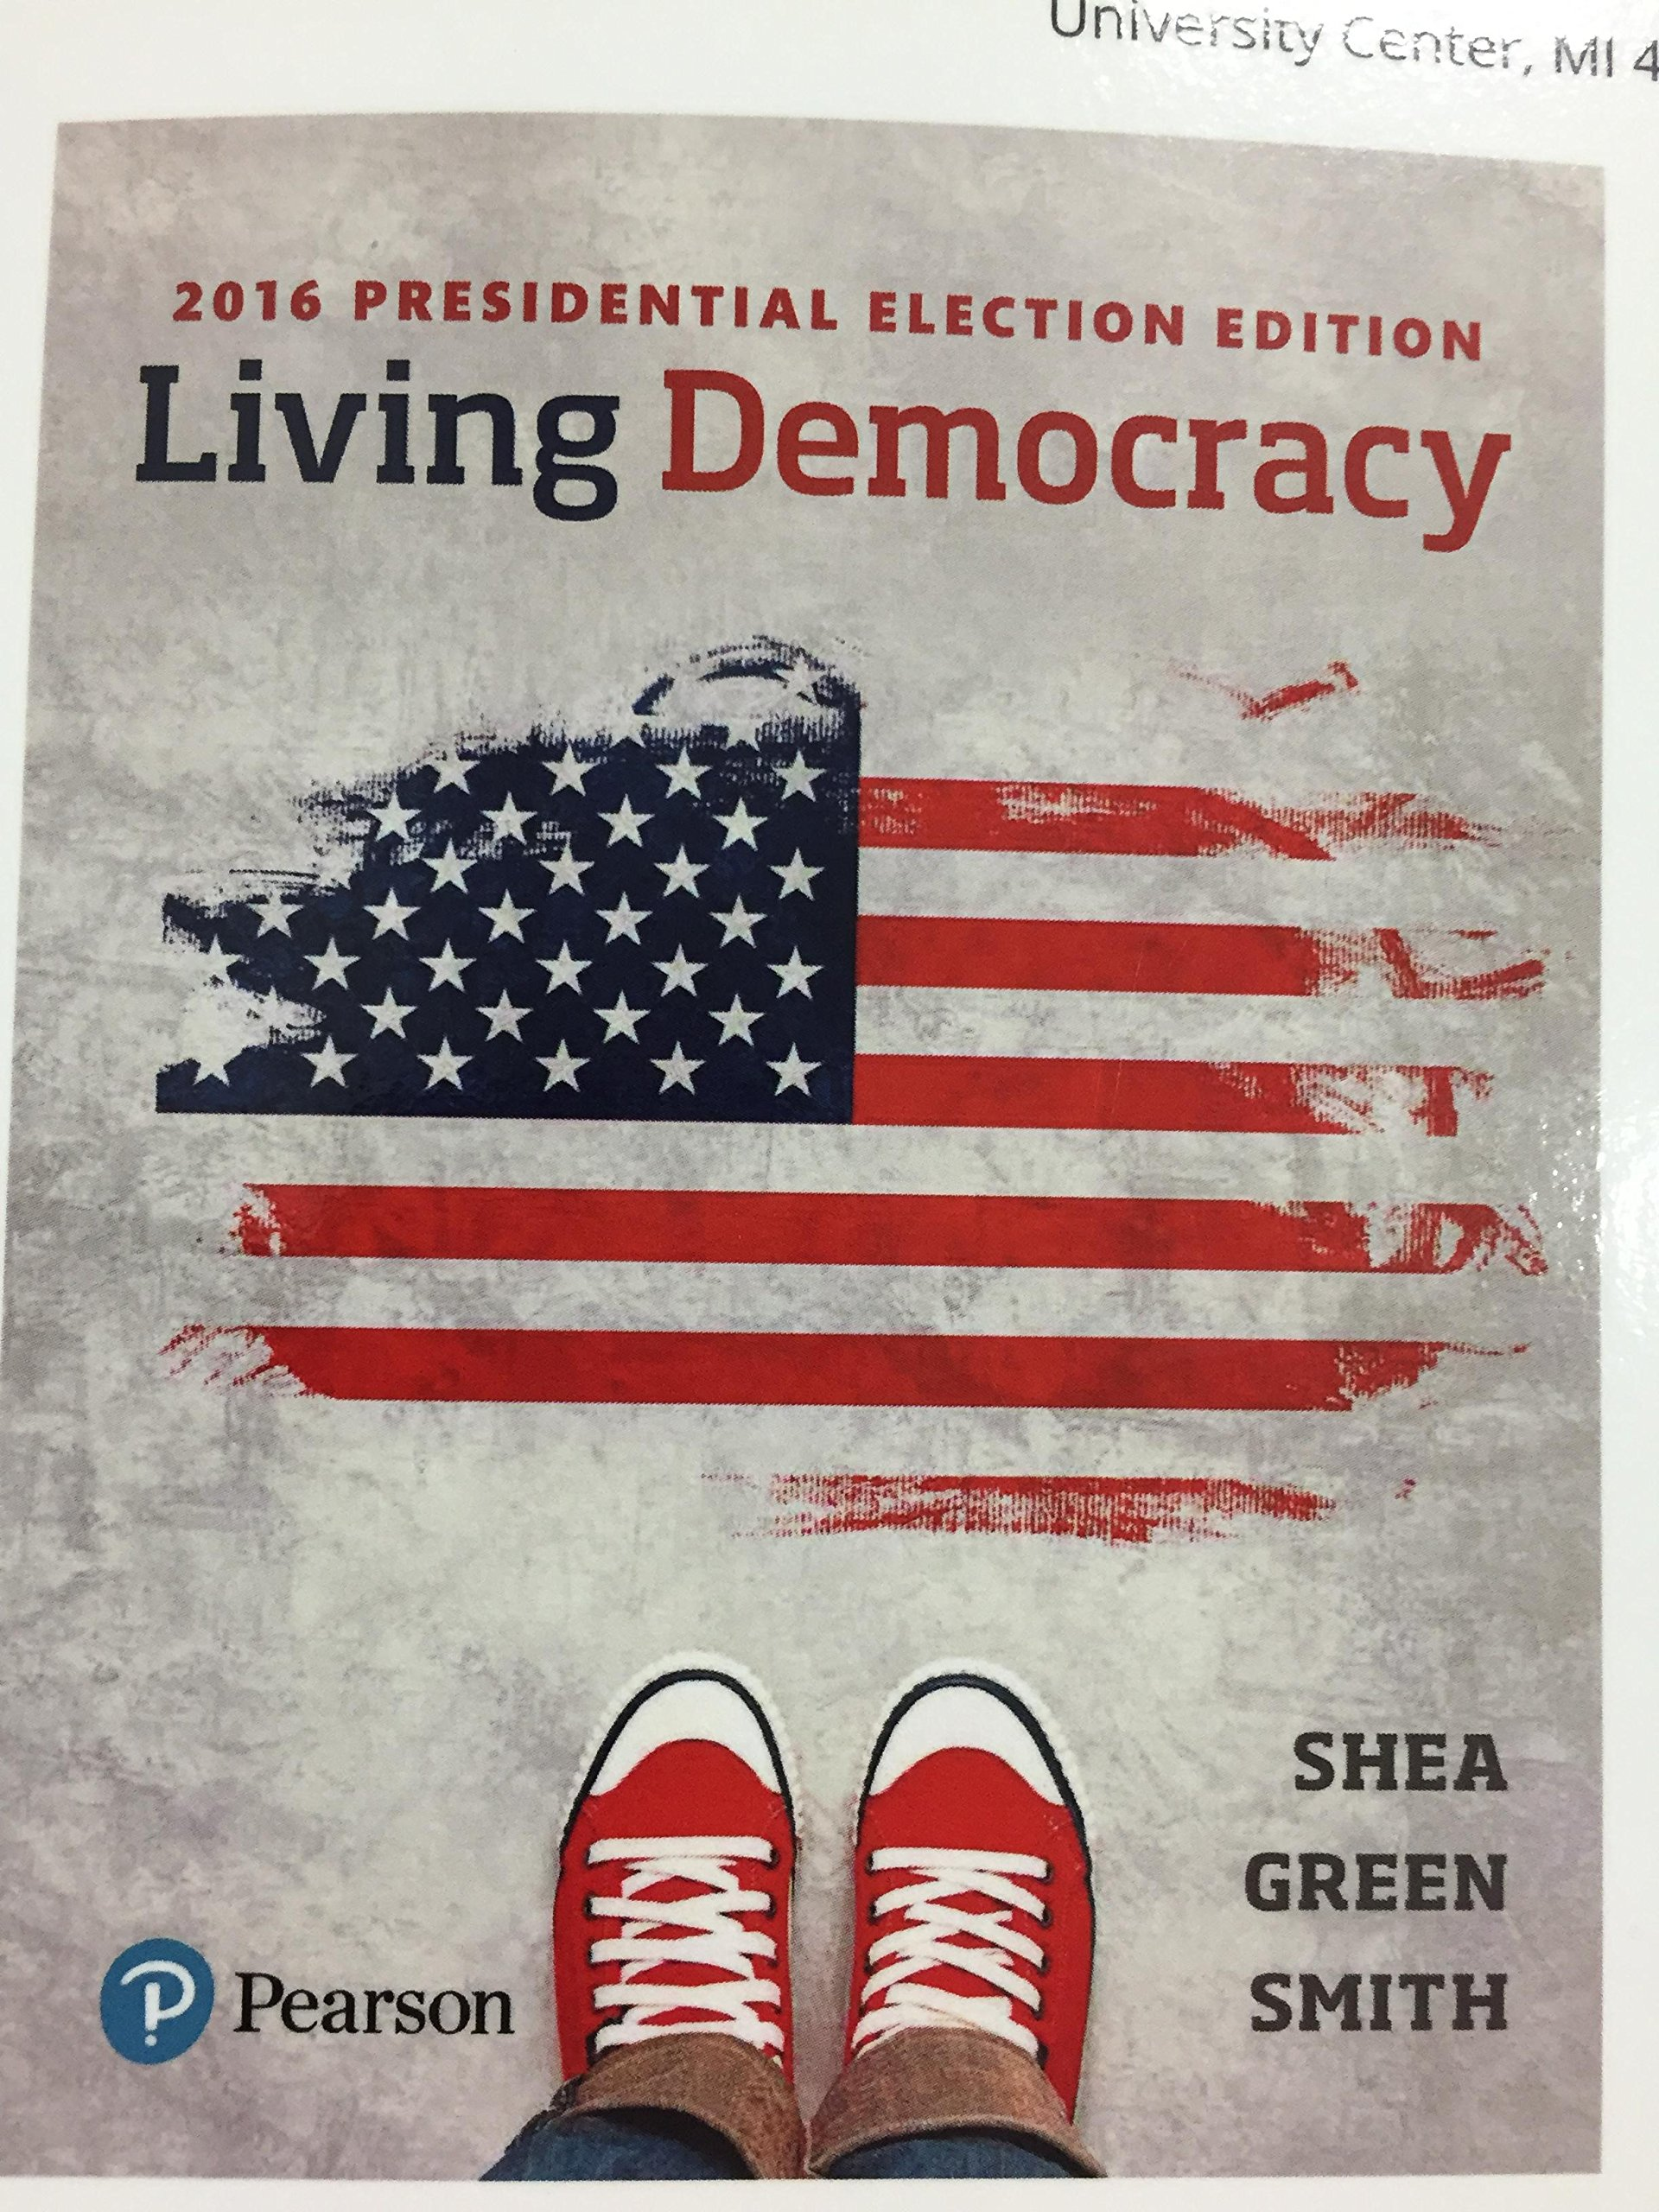 Download Living Democracy 2016 presidential election edition DELTA COLLEGE PDF